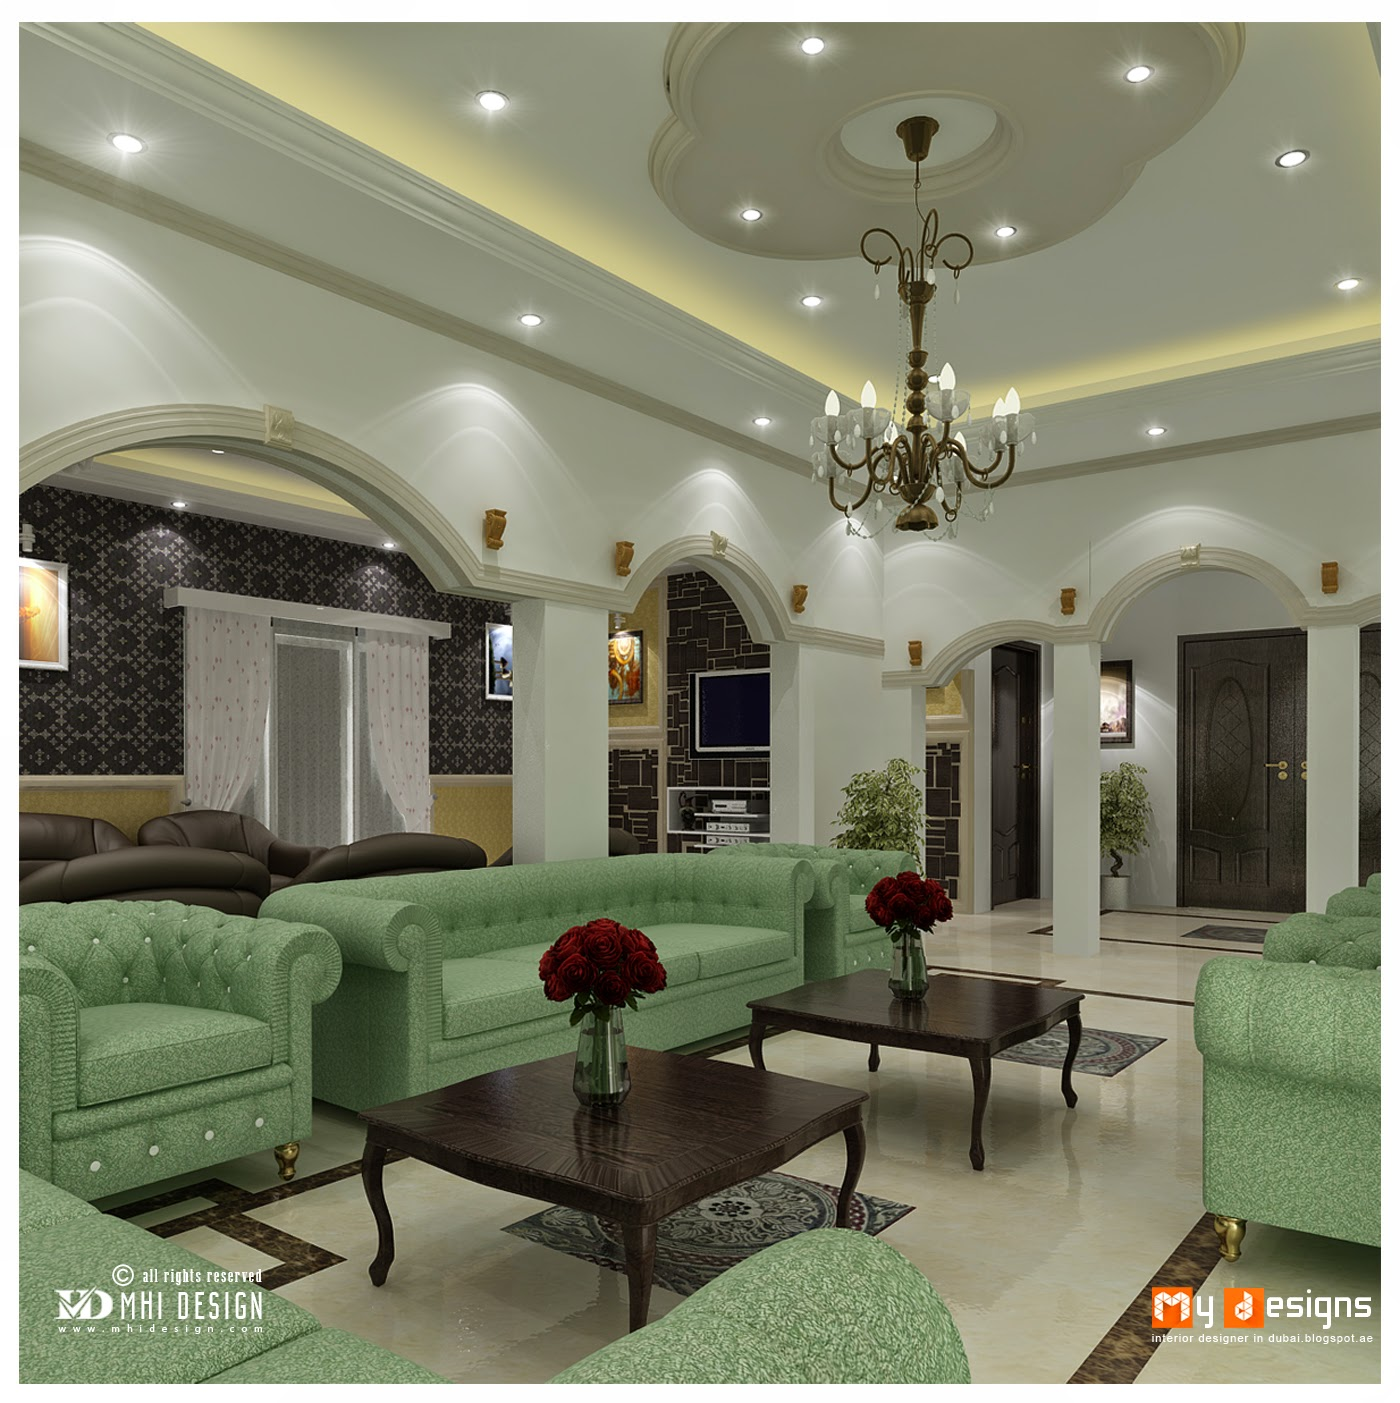 Office interior designs in dubai interior designer in for Villa interior design in dubai